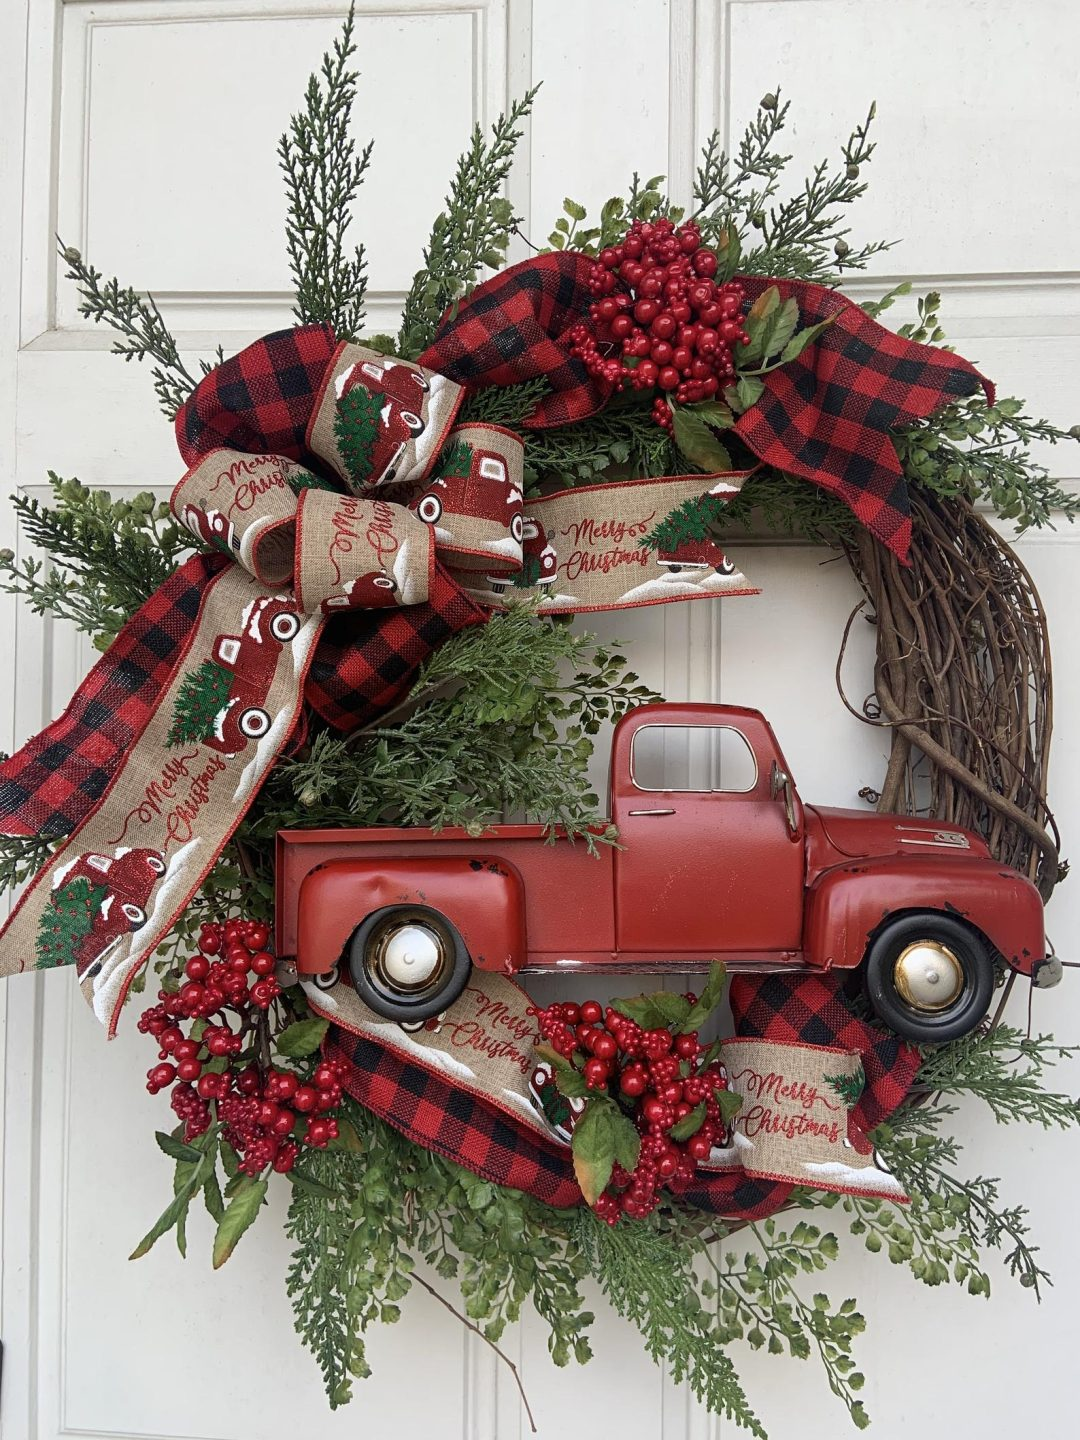 Rustic red truck wreath with ribbons